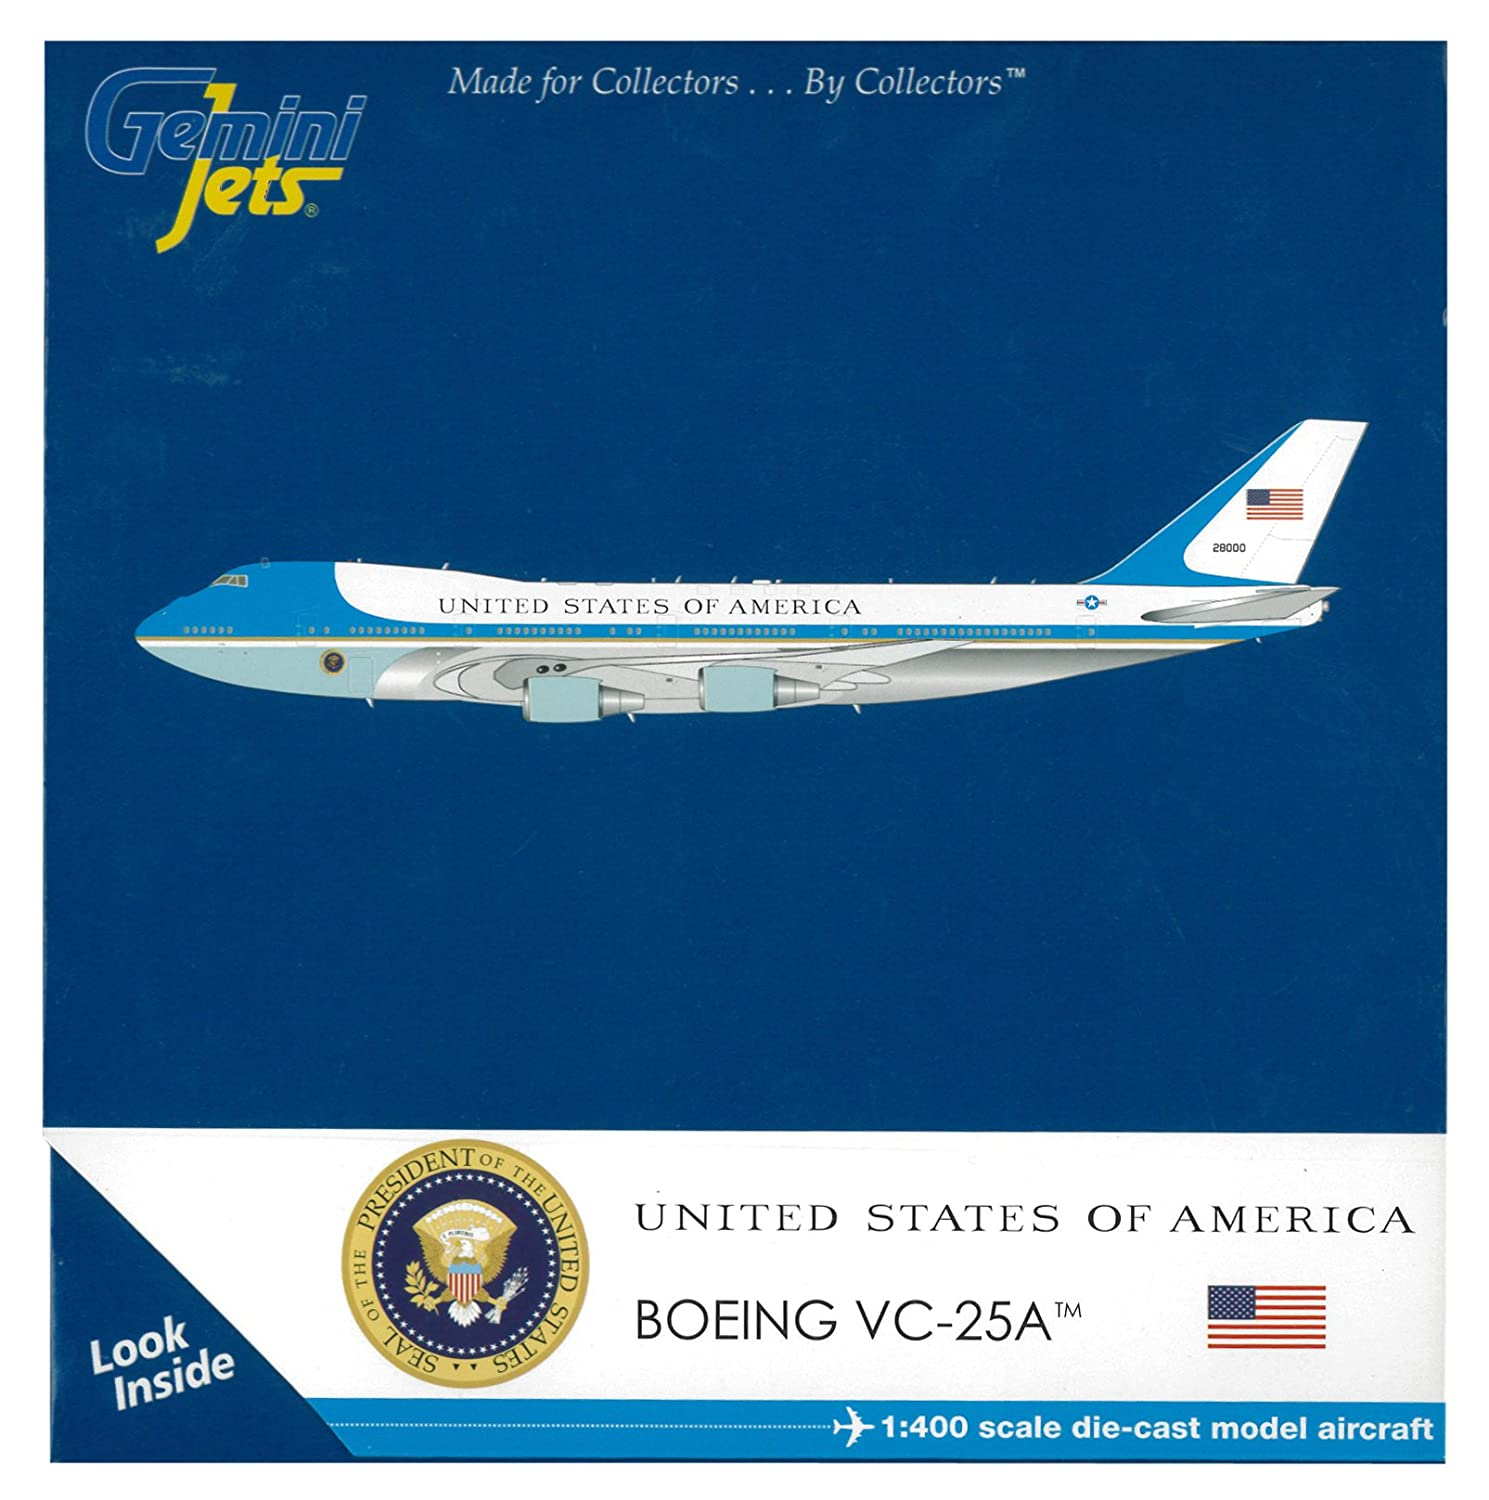 Gemini Jets Air Force One Boeing VC-25A (Boeing 747-200B) GJAFO1208